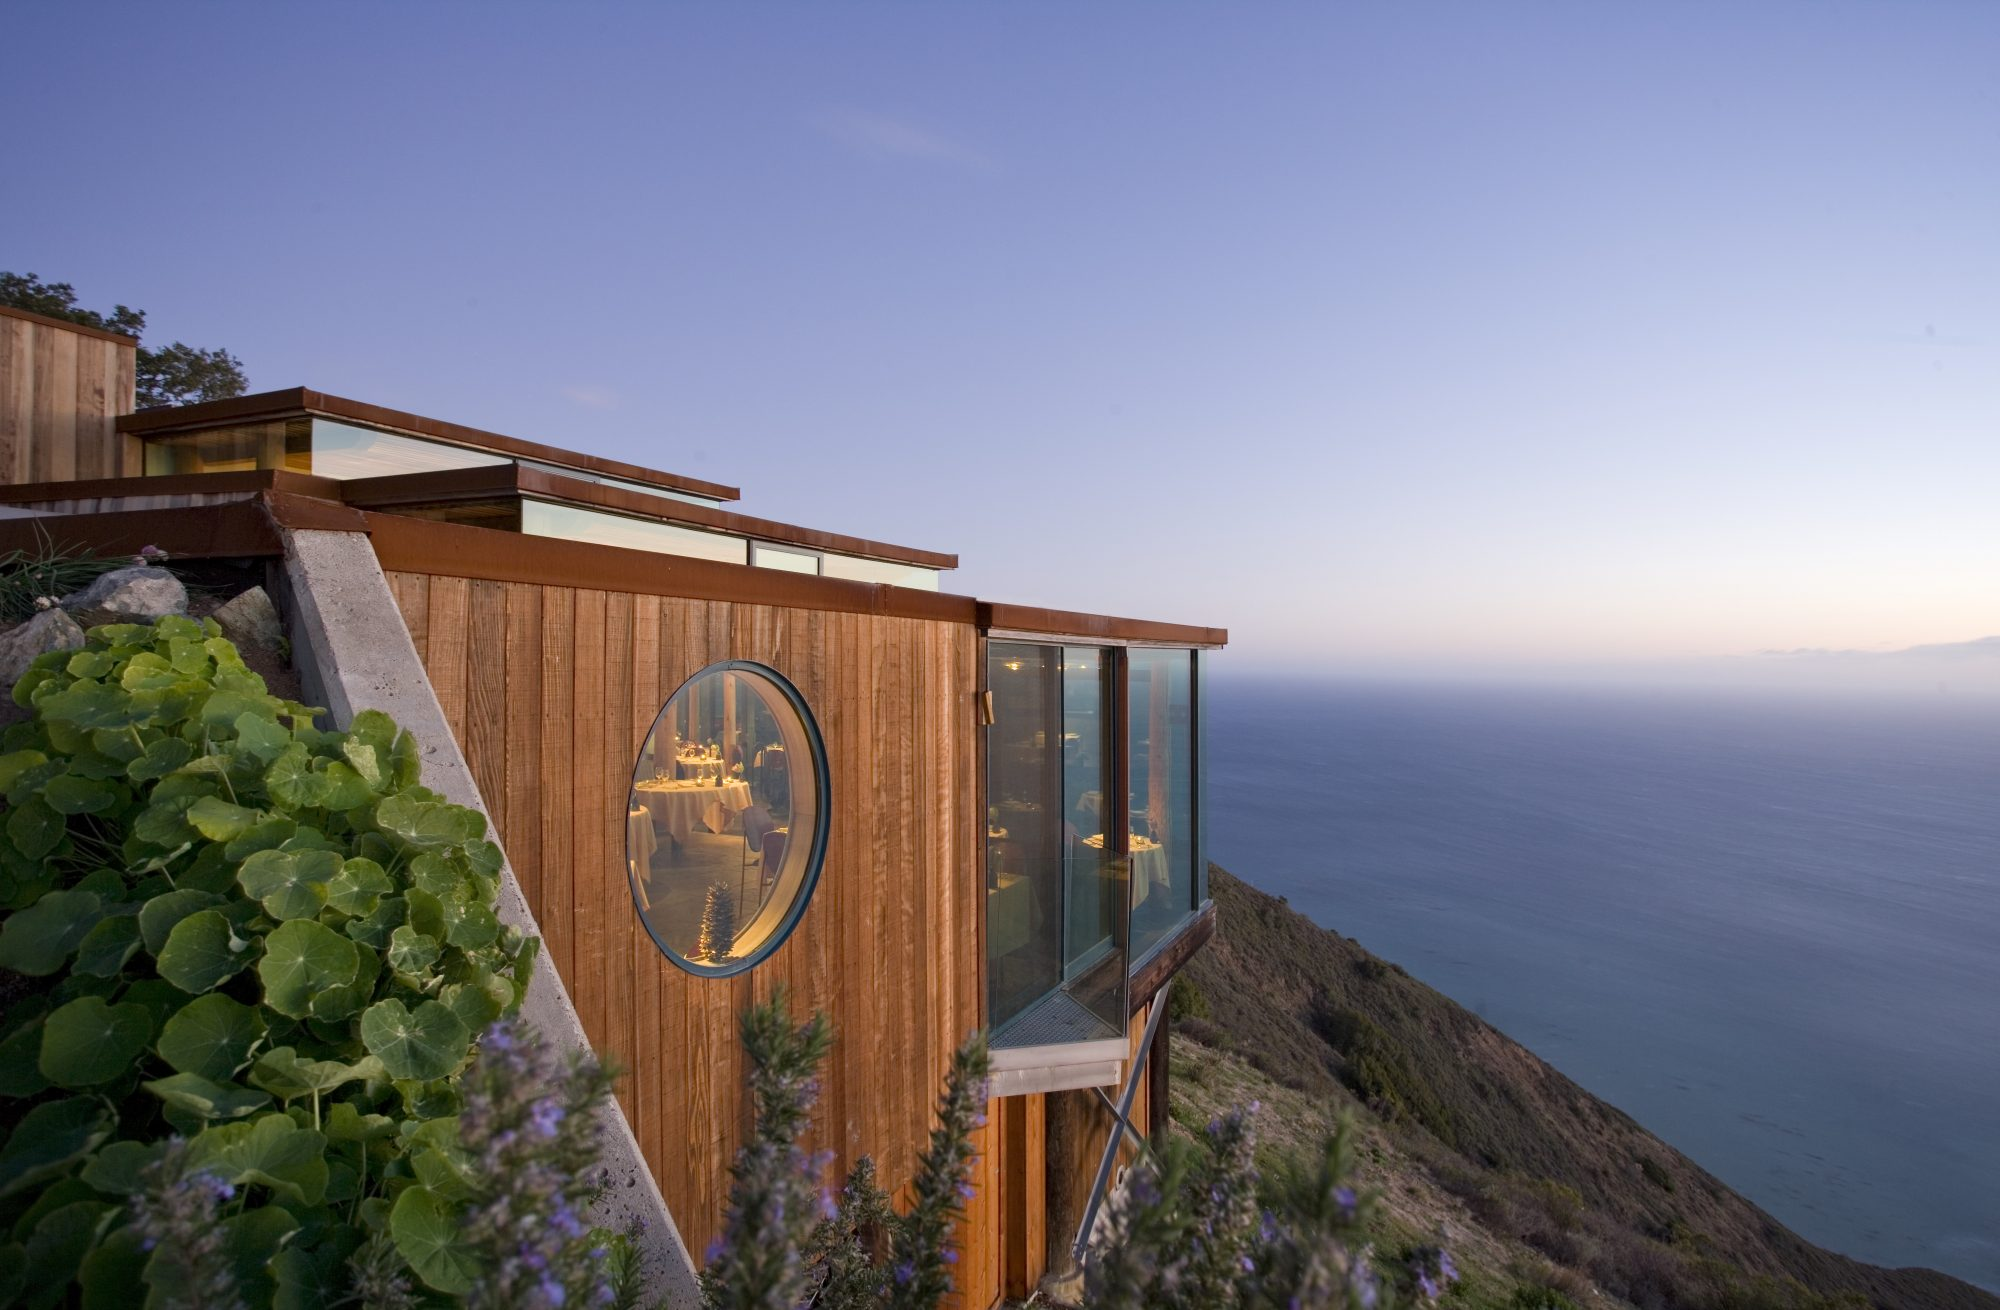 No. 17 Post Ranch Inn in Big Sur, California